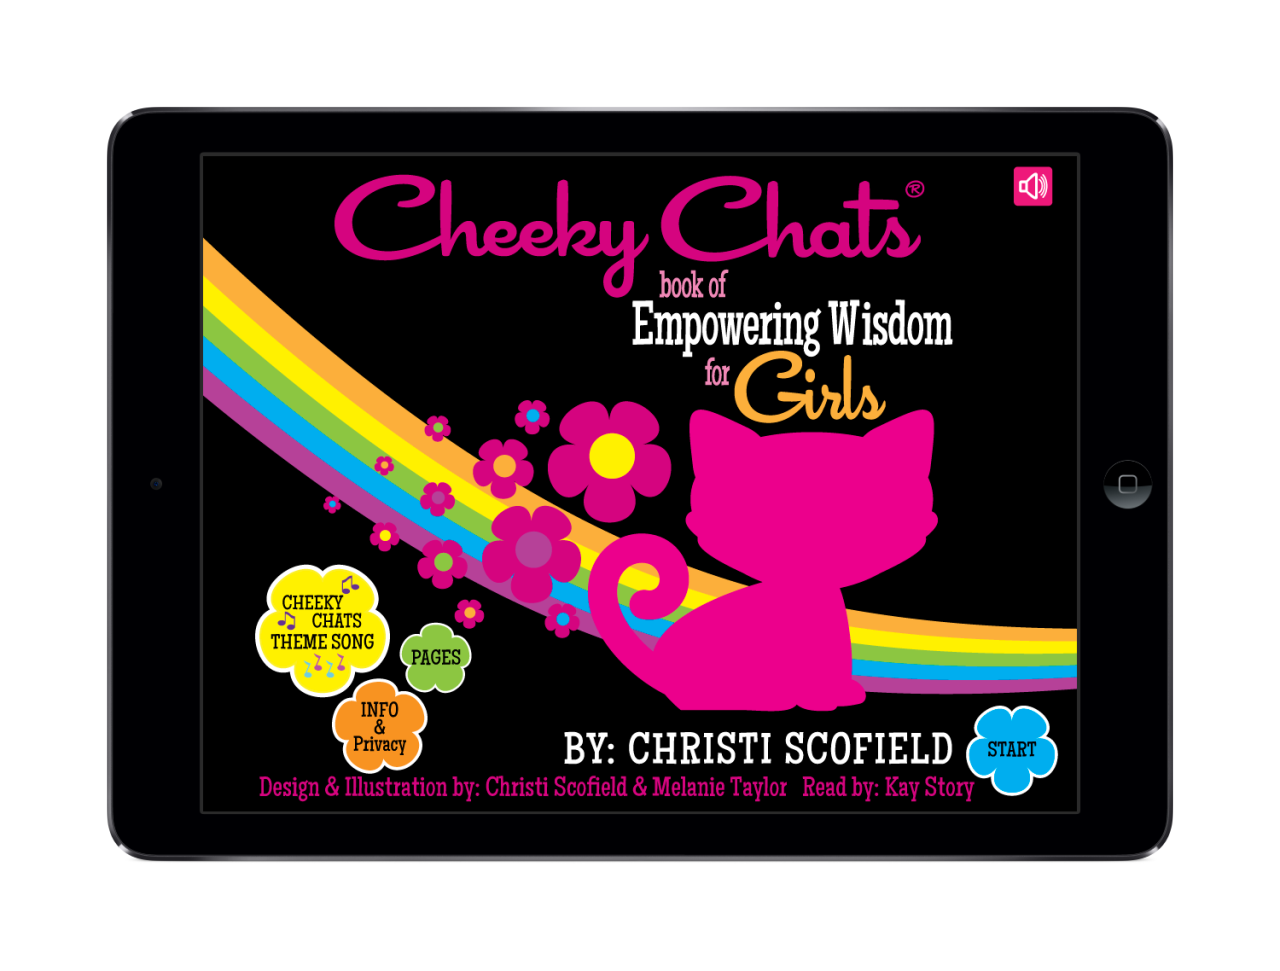 WooHoo!  Thank you to the amazing app review site, @apppicker for the AWESOME review of our Cheeky Chats App!!     http://www.apppicker.com/reviews/18321/Cheeky-Chats-Book-of-Empowering-Wisdom-app-review-follow-these-cheeky-cats   FYI - The app is now available for iPhone iPad, Android devices on Google Play and Kindles from the Amazon app store!.    ‪